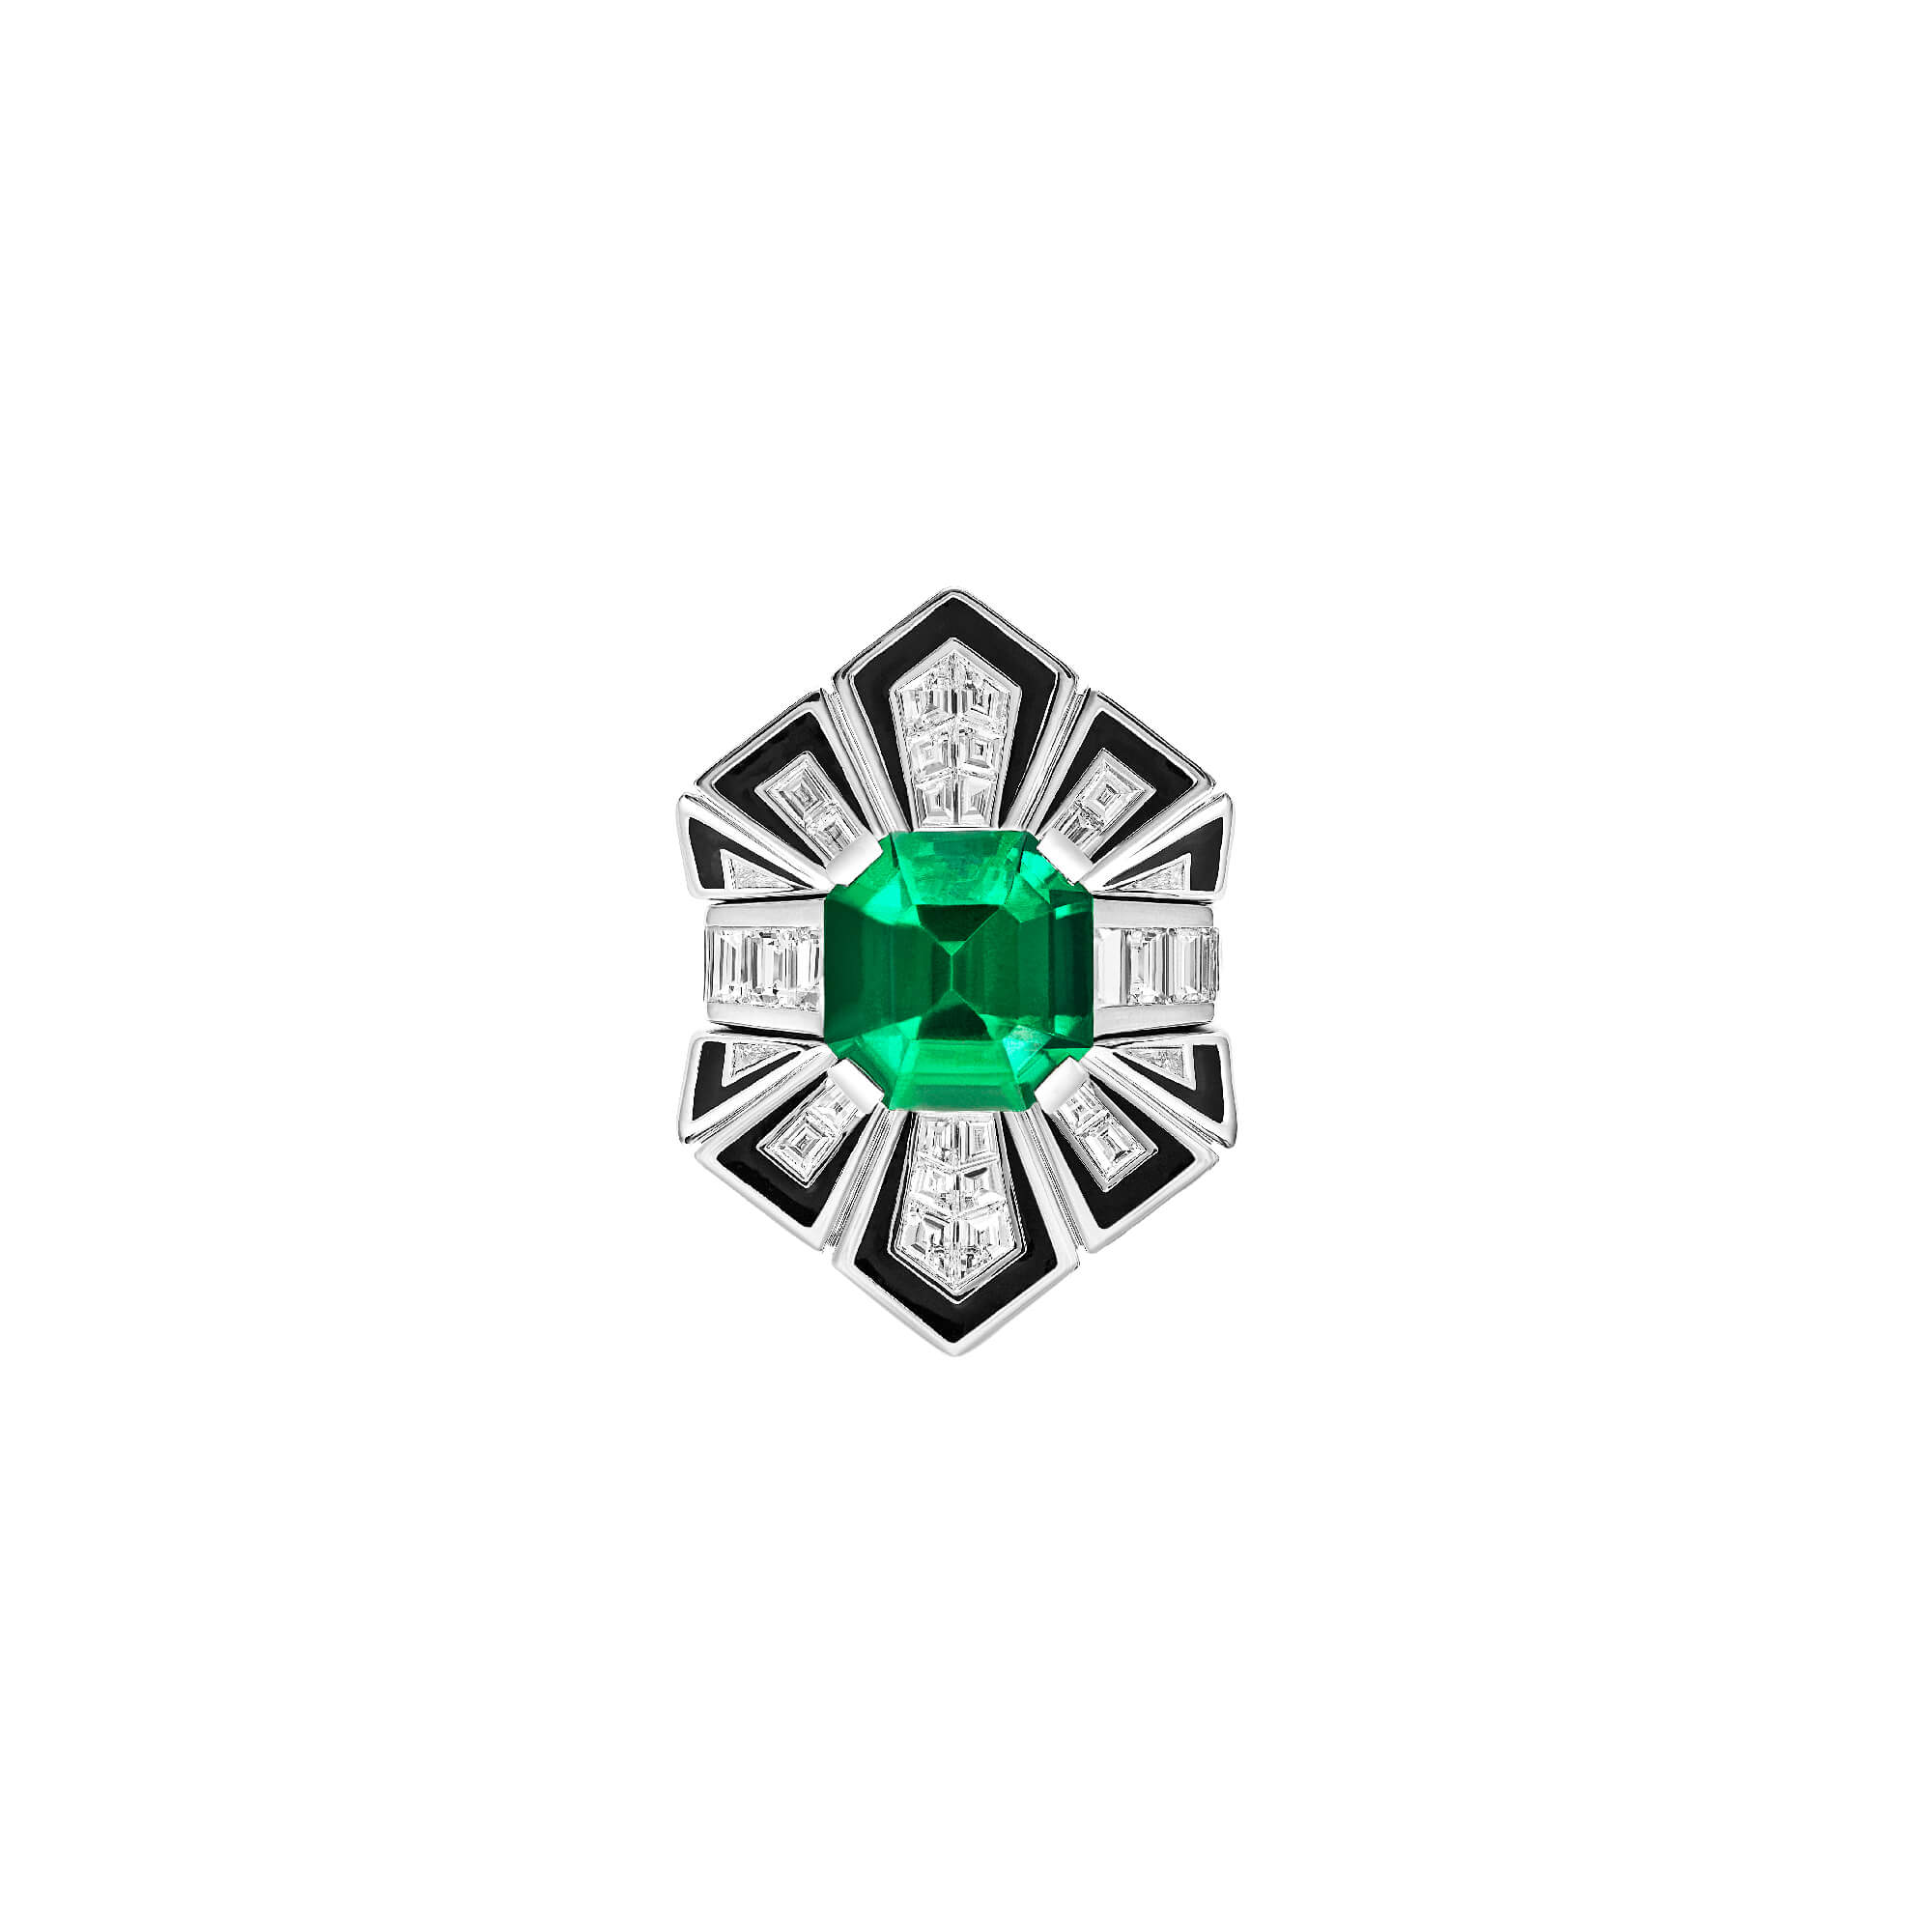 Couture Enamel Emerald Cocktail Ring | Dynamite